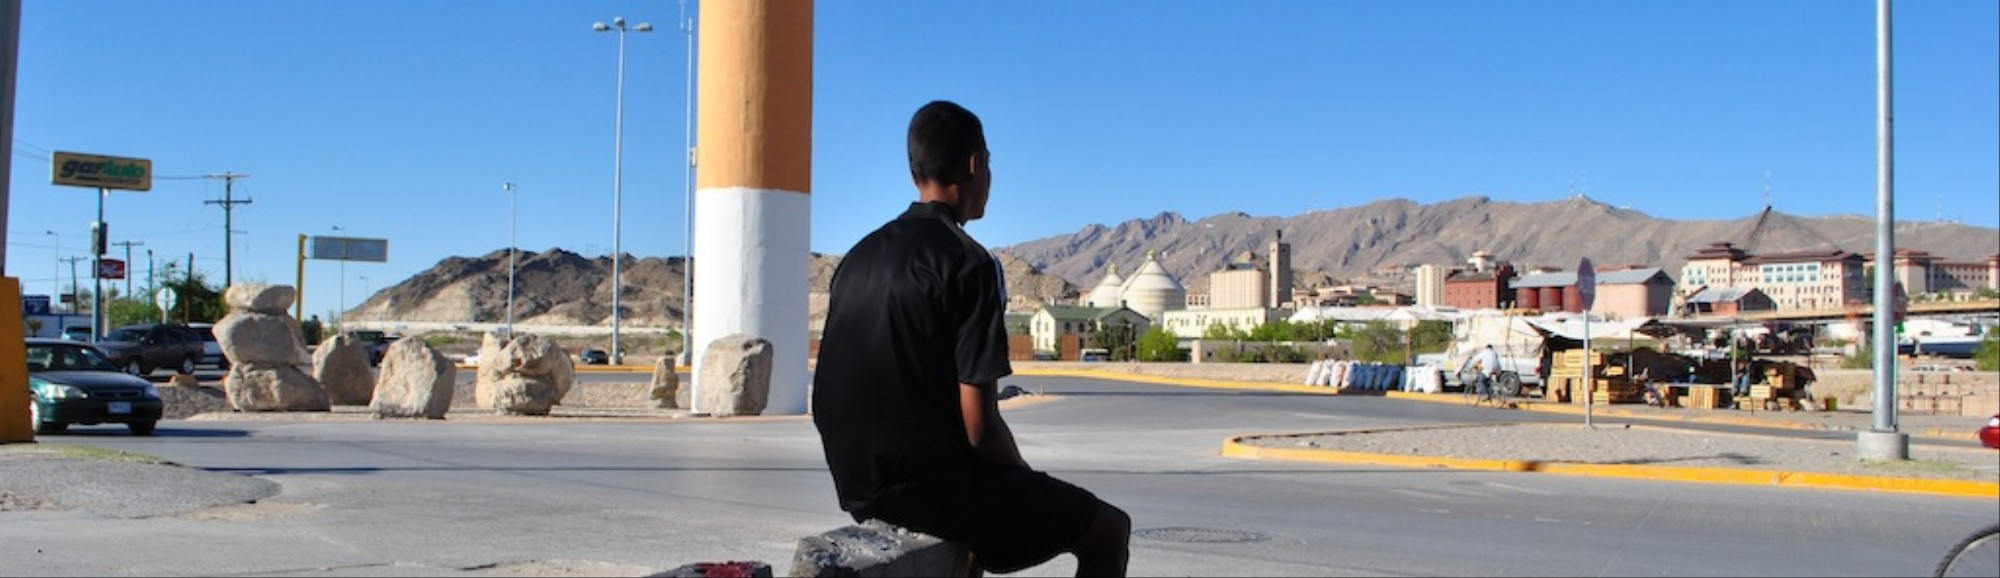 Young and Alone: The Growing Humanitarian Crisis at the US-Mexico Border